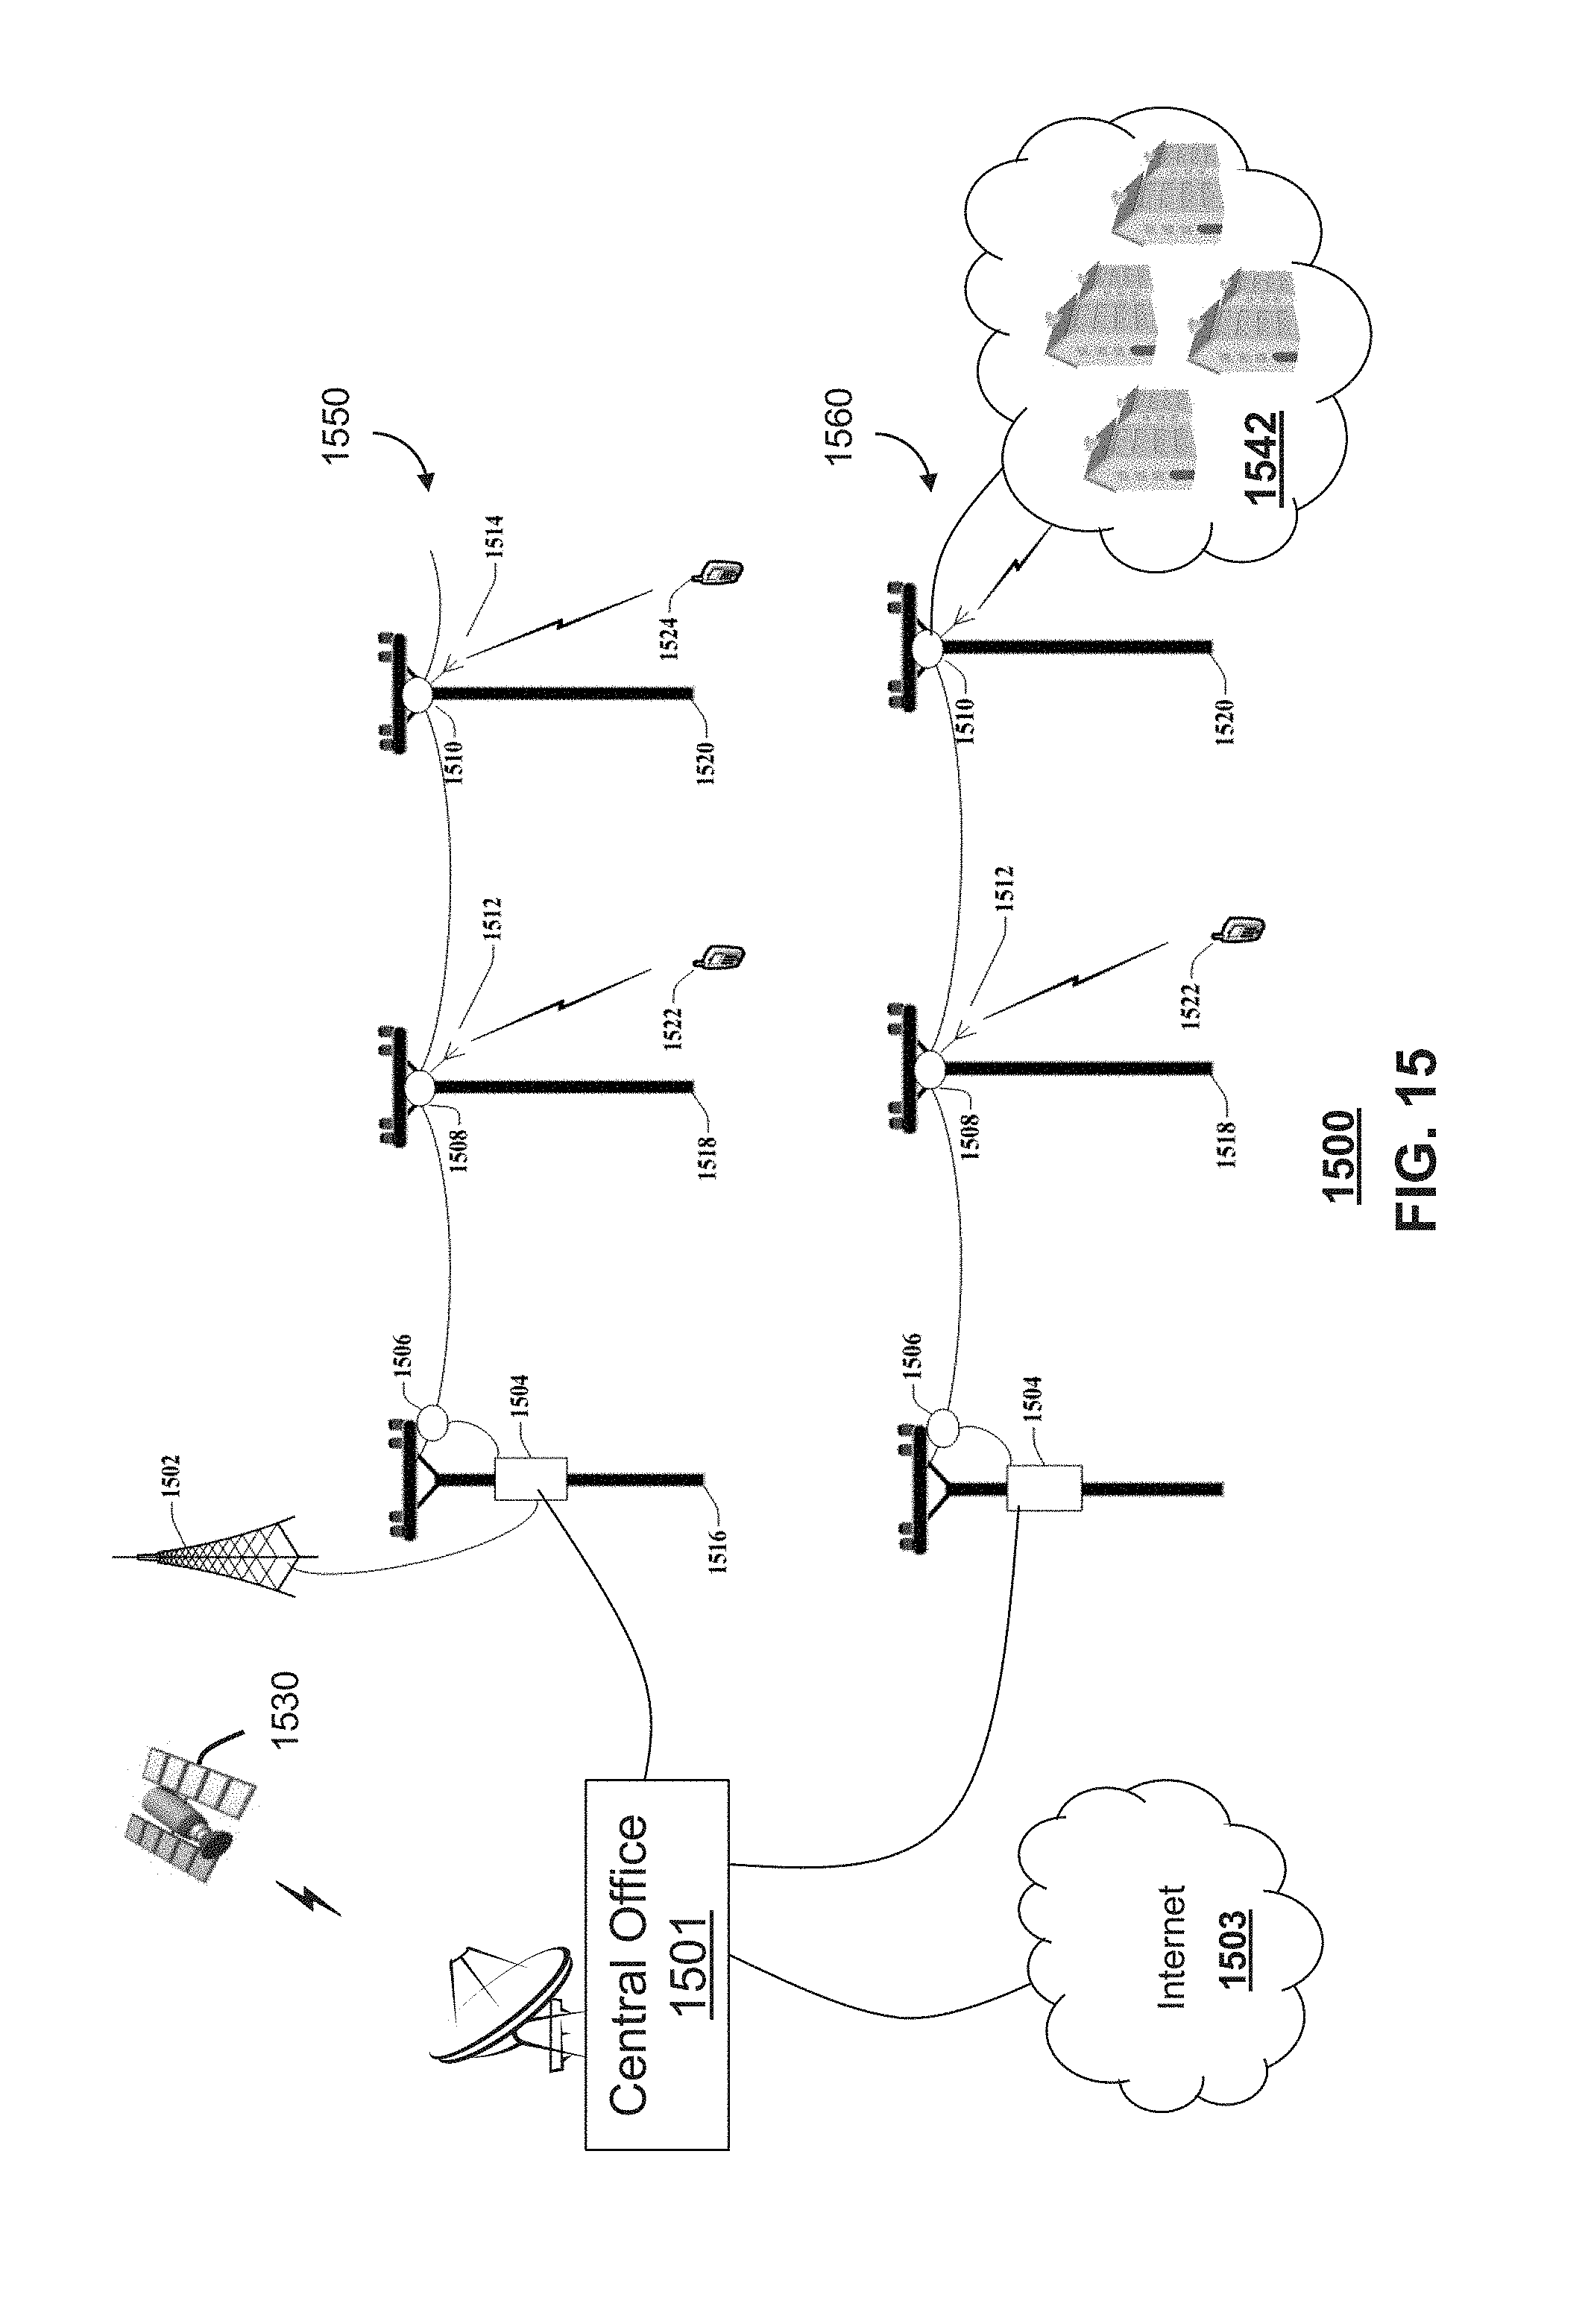 Patent Us 10009901 B2 Electric Fence Charger Likewise Circuit Diagram On